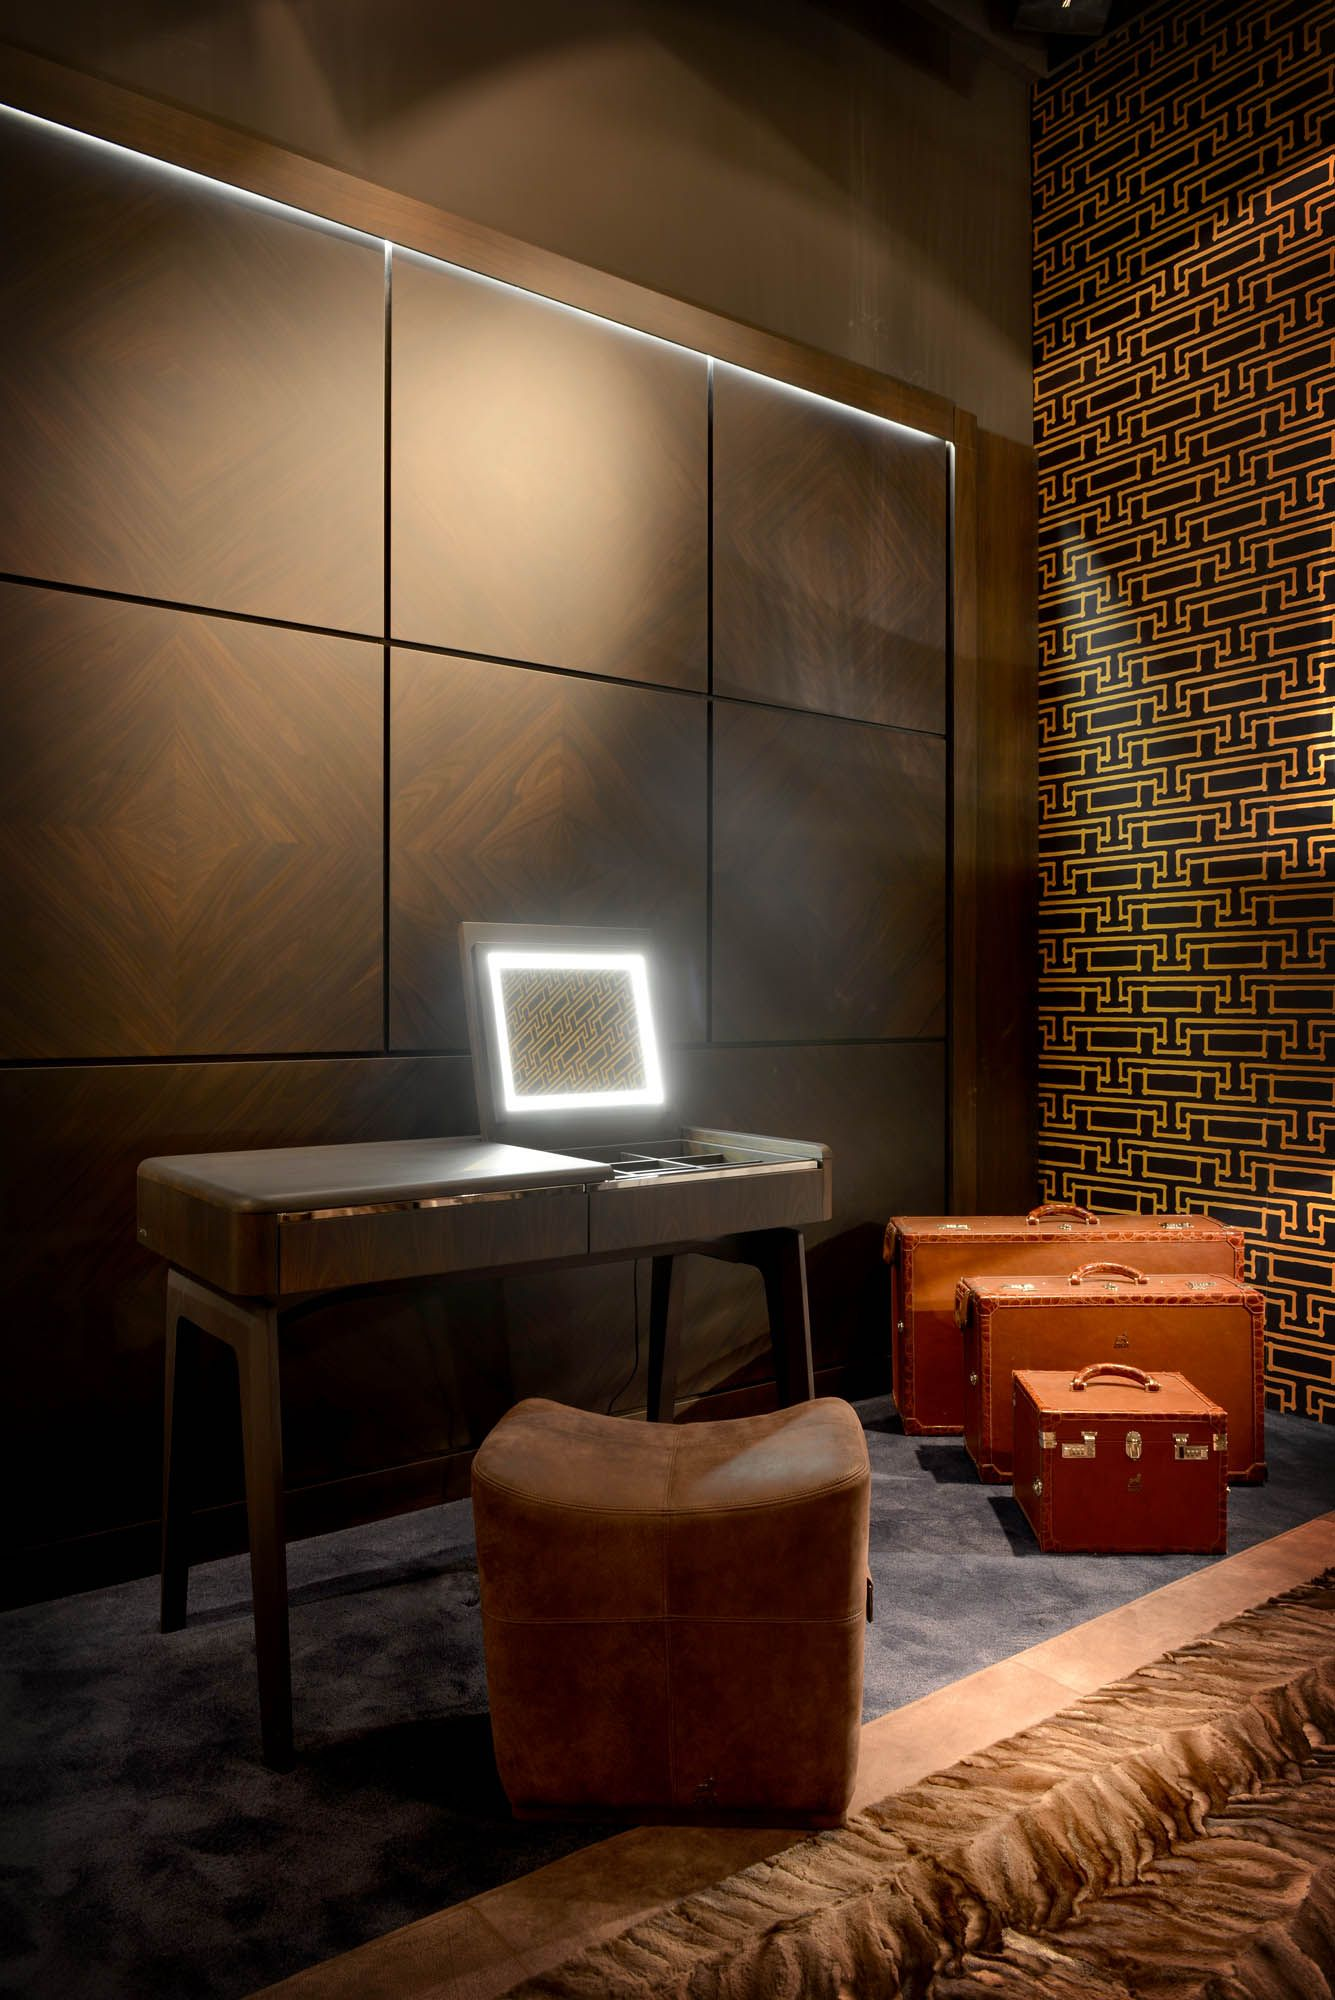 interior design for your home - Best interior design, Interiors and Wood veneer on Pinterest